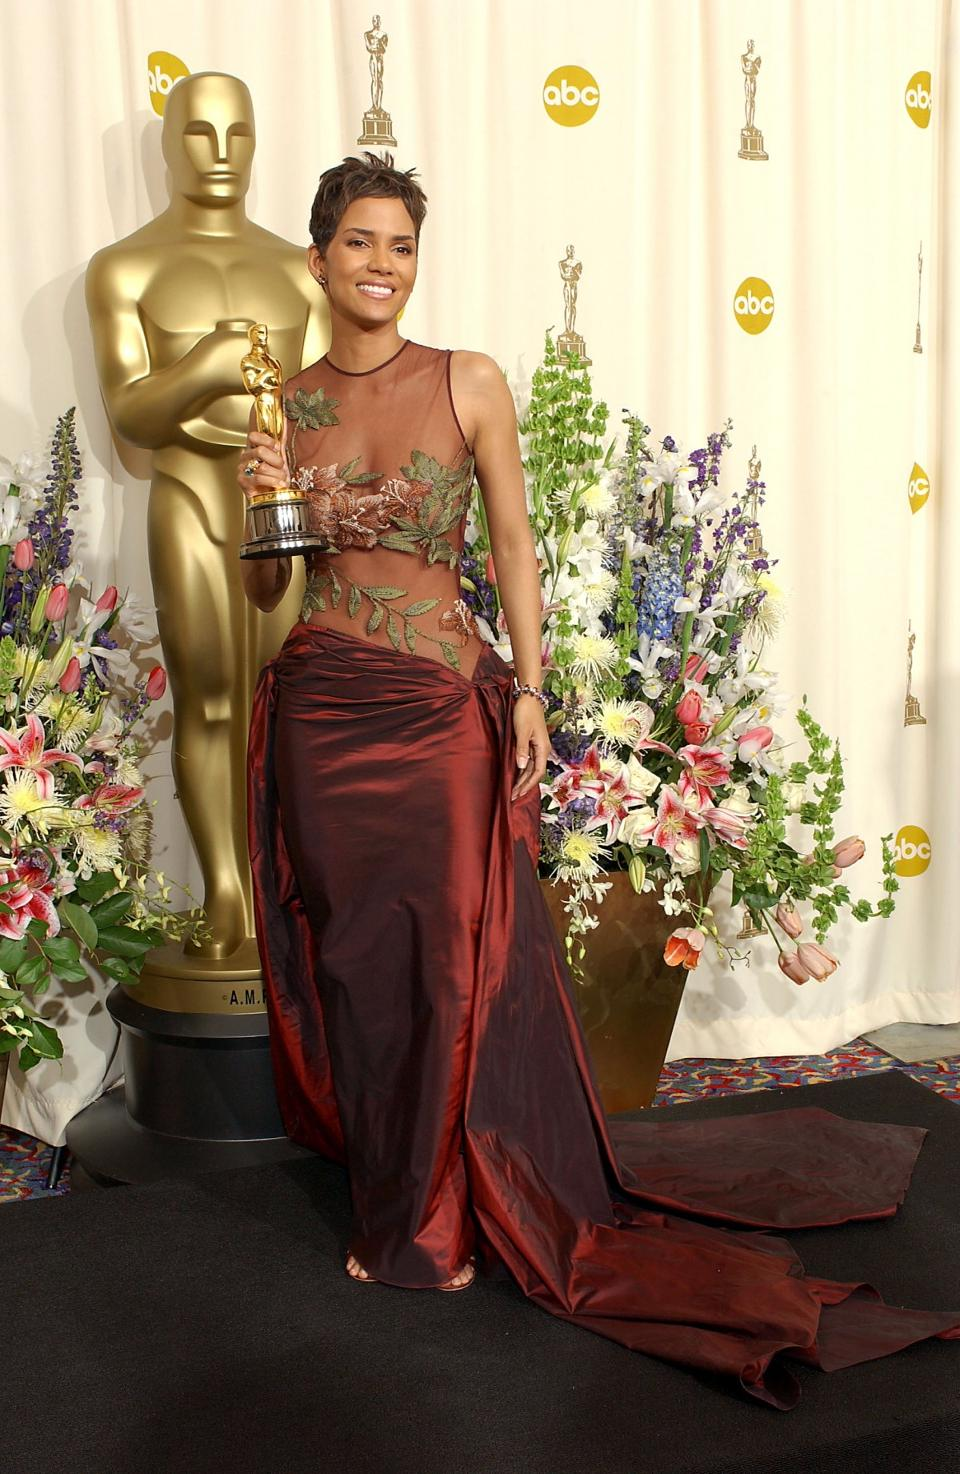 Halle Berry in Elie Saab at the Oscars 2002. Photo by Frank Micelotta/Getty Images